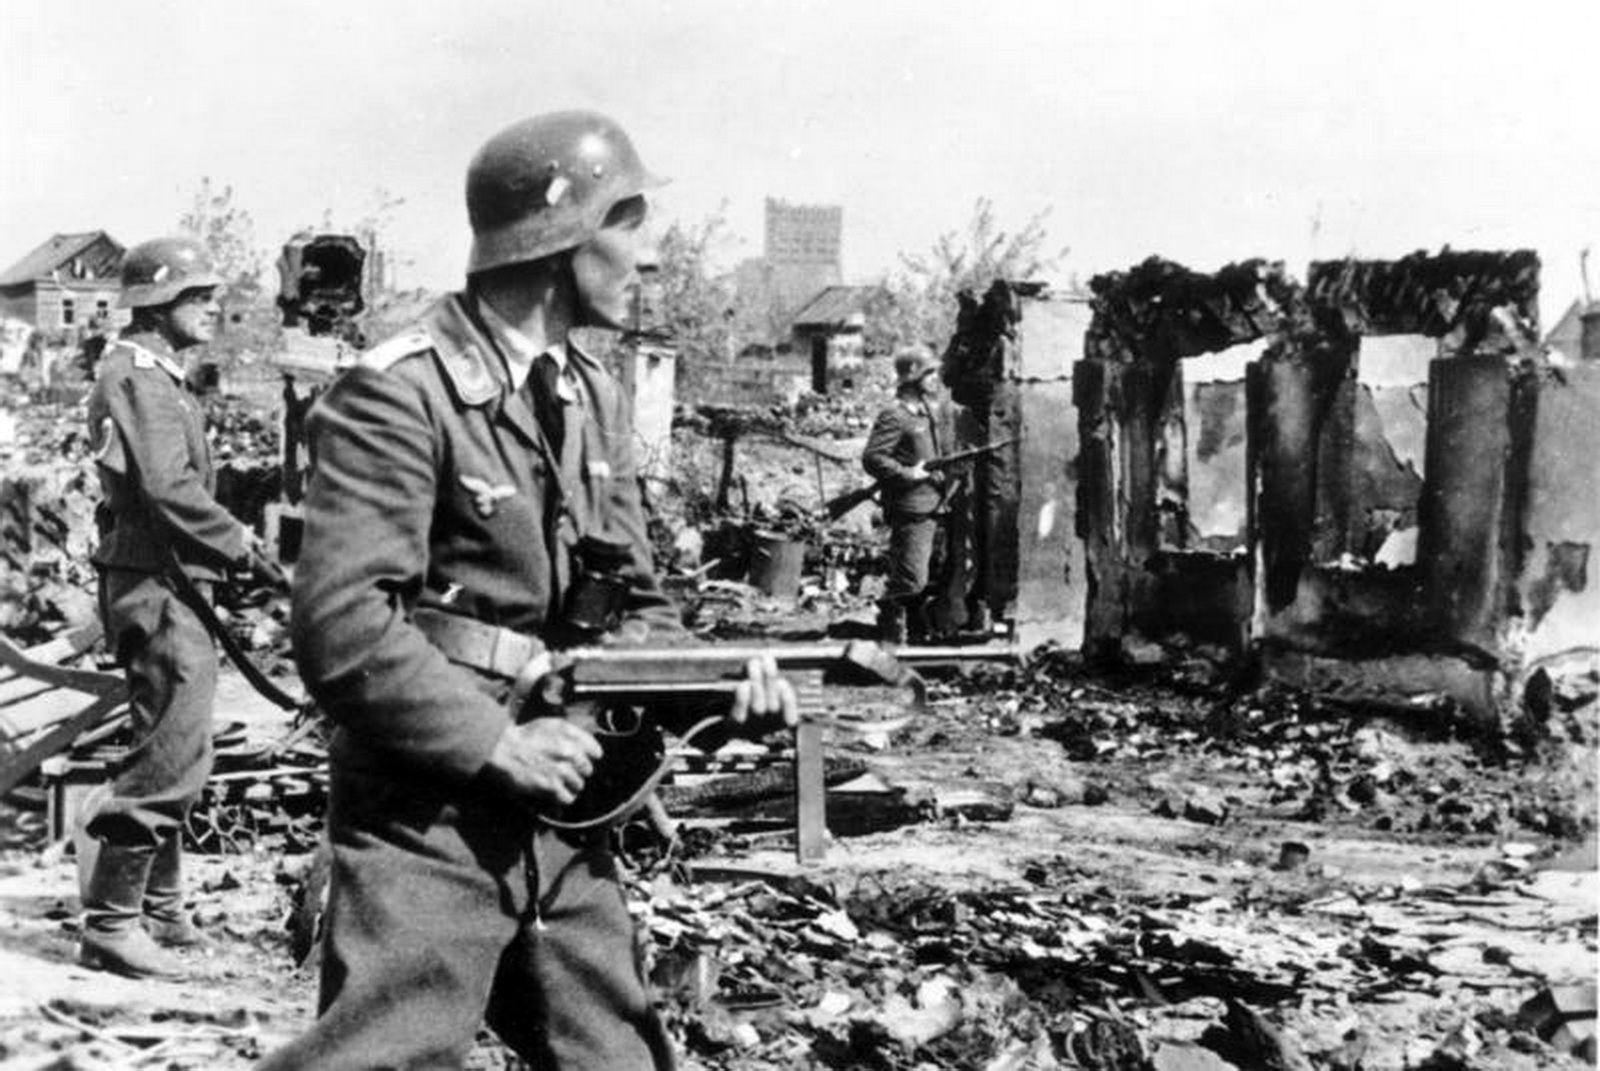 World War II Pictures In Details: Luftwaffe Troops at